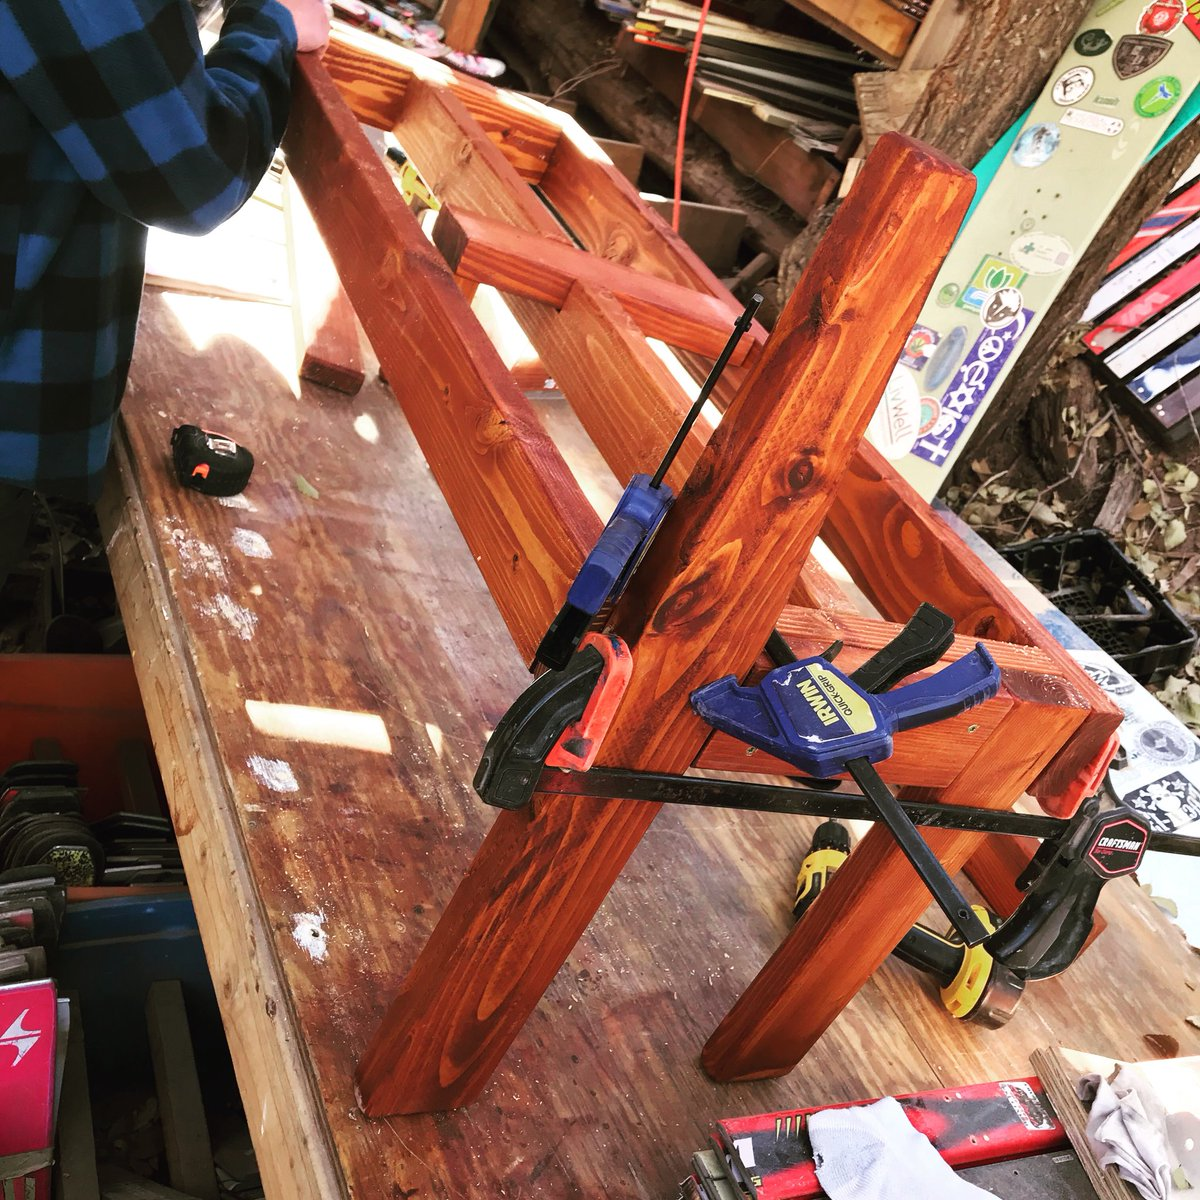 Building bases for Avalanche Sports Bar &amp; Grill in Crested Butte for their Ski booth seating expansion!   Awesome. #handmade #handcrafted #madeincolorado #madeintheusa #benches #douglasfir #woodworking #buylocal #coloradolife #repurposed #skis #upcycle #coloradosprings #manitou<br>http://pic.twitter.com/0FxUxiZujB